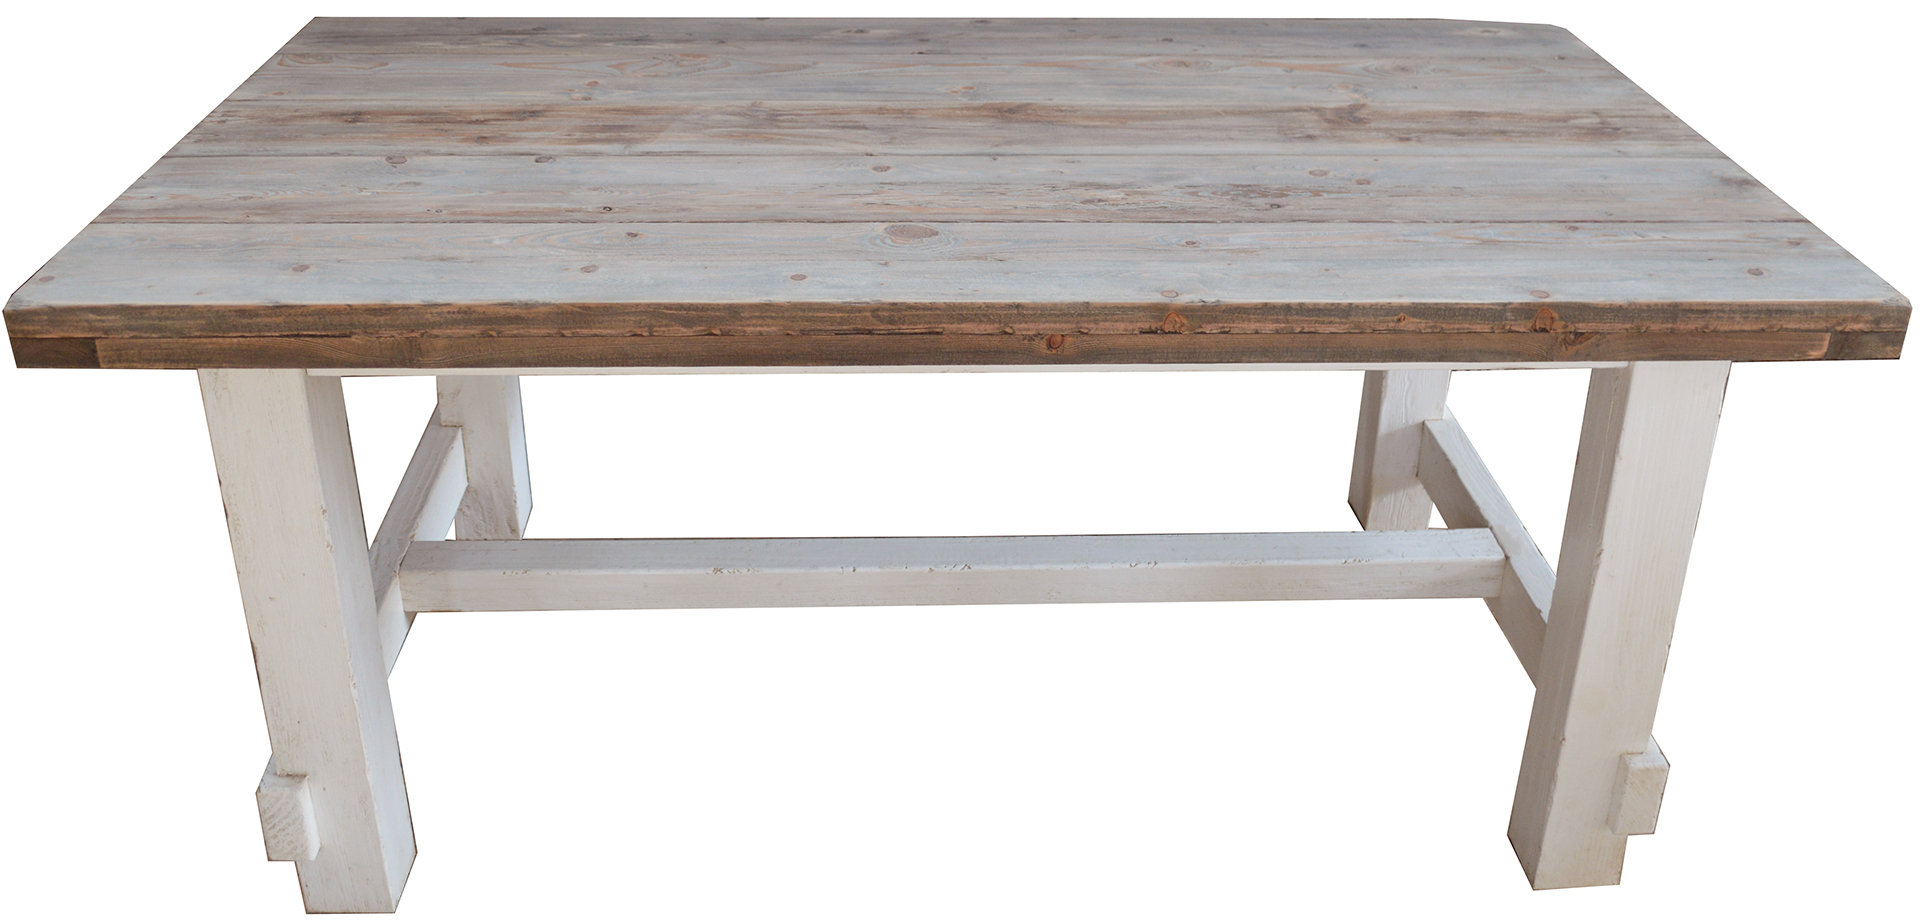 Semarang Dining table 180